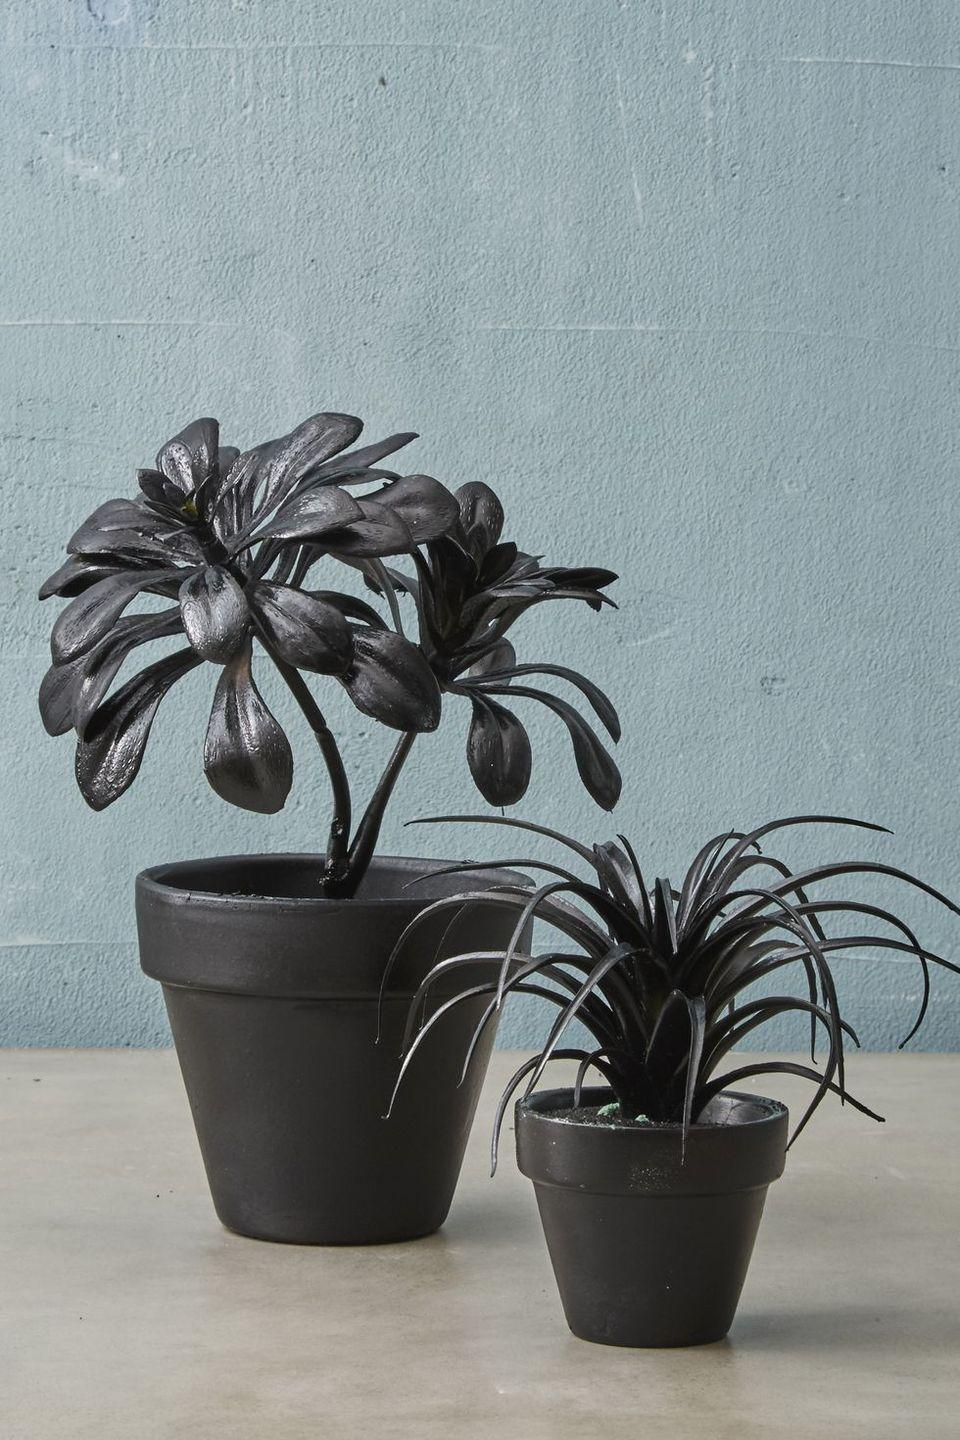 """<p>Take a faux plant to the next level with black spray paint. Play up the creepy factor by placing them in black pots with dark sand. <br> </p><p><a class=""""link rapid-noclick-resp"""" href=""""https://go.redirectingat.com?id=74968X1596630&url=https%3A%2F%2Fwww.homedepot.com%2Fp%2FRust-Oleum-Painter-s-Touch-2X-12-oz-Gloss-Black-General-Purpose-Spray-Paint-334026%2F307244831&sref=https%3A%2F%2Fwww.goodhousekeeping.com%2Fholidays%2Fhalloween-ideas%2Fg33437890%2Fhalloween-table-decorations-centerpieces%2F"""" rel=""""nofollow noopener"""" target=""""_blank"""" data-ylk=""""slk:SHOP BLACK SPRAY PAINT"""">SHOP BLACK SPRAY PAINT</a></p>"""